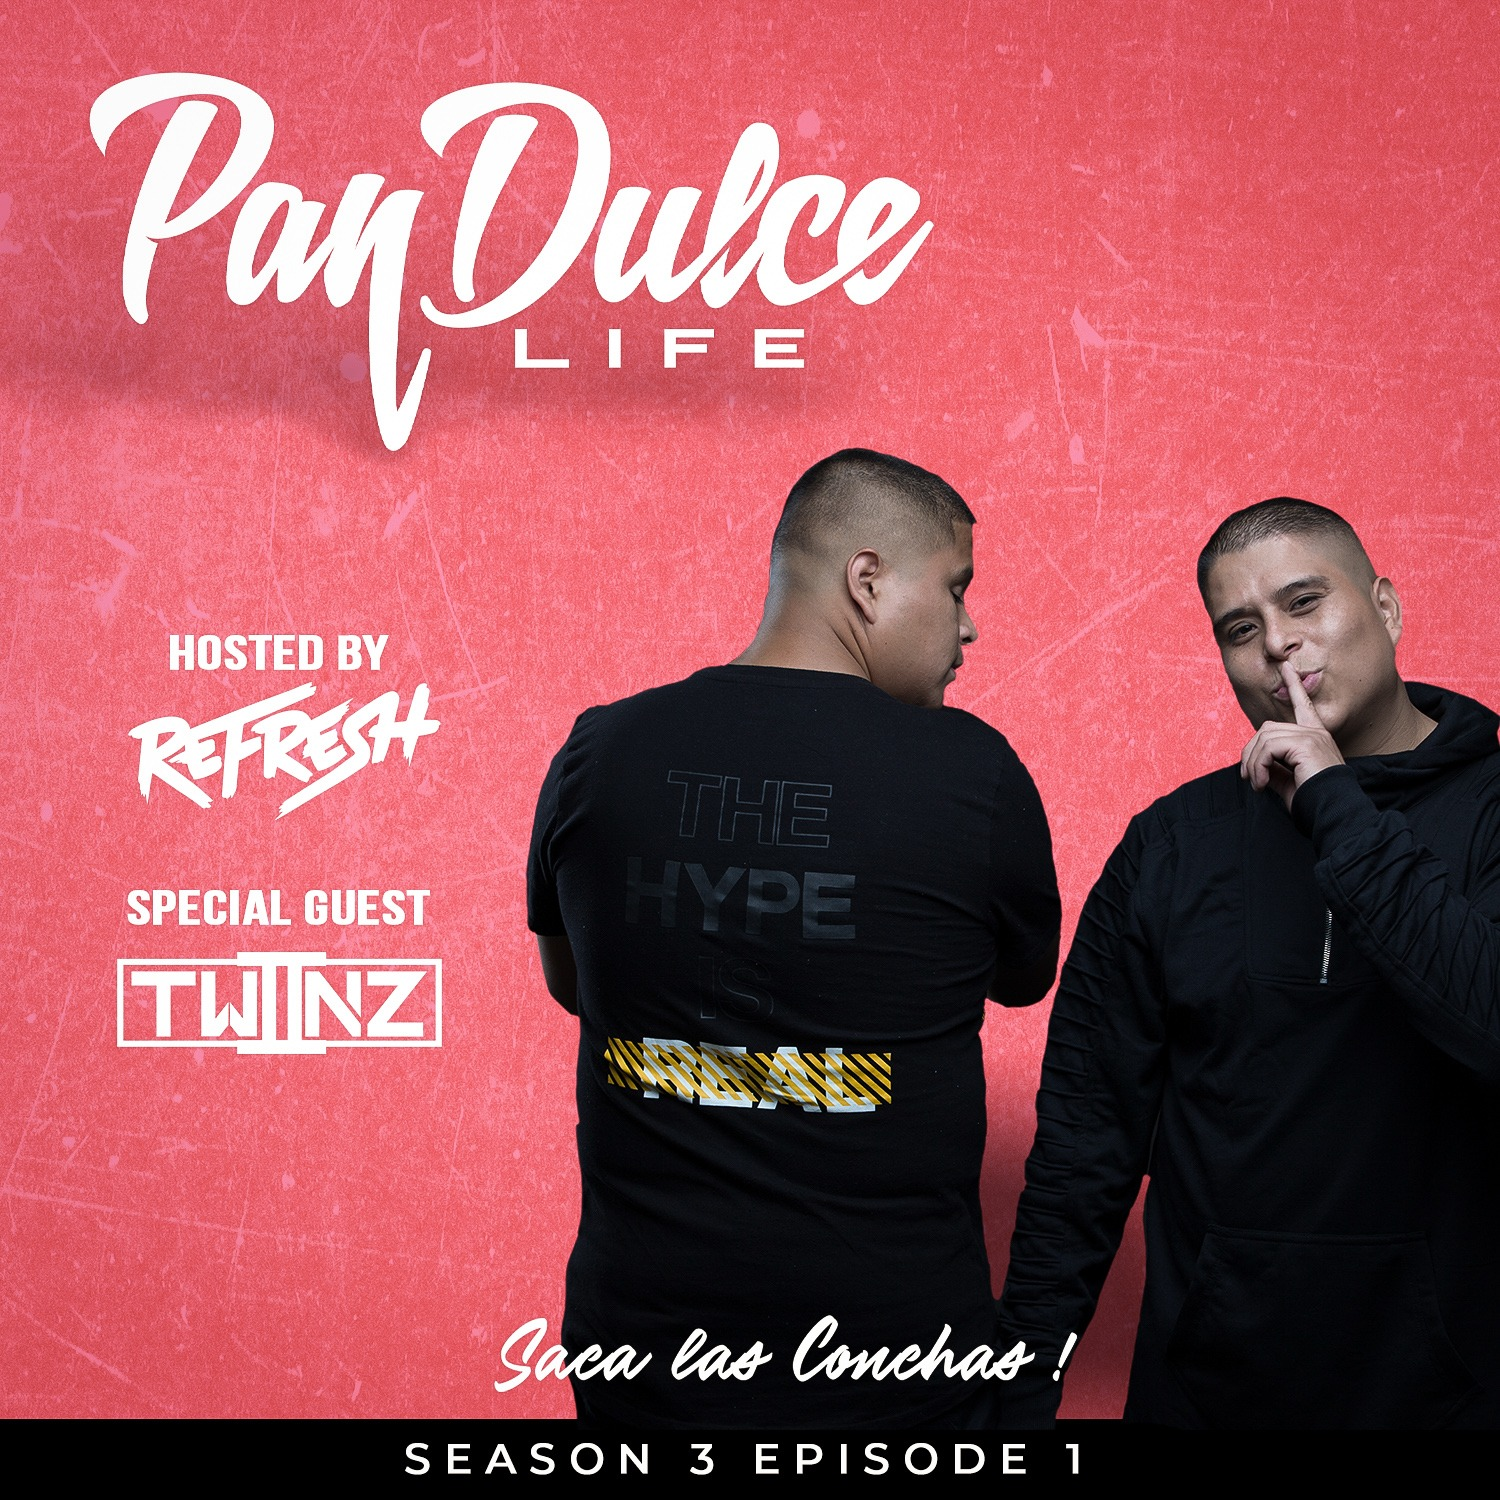 """The Pan Dulce Life"" With DJ Refresh - Season 3 Episode 1 feat. Twiinz"